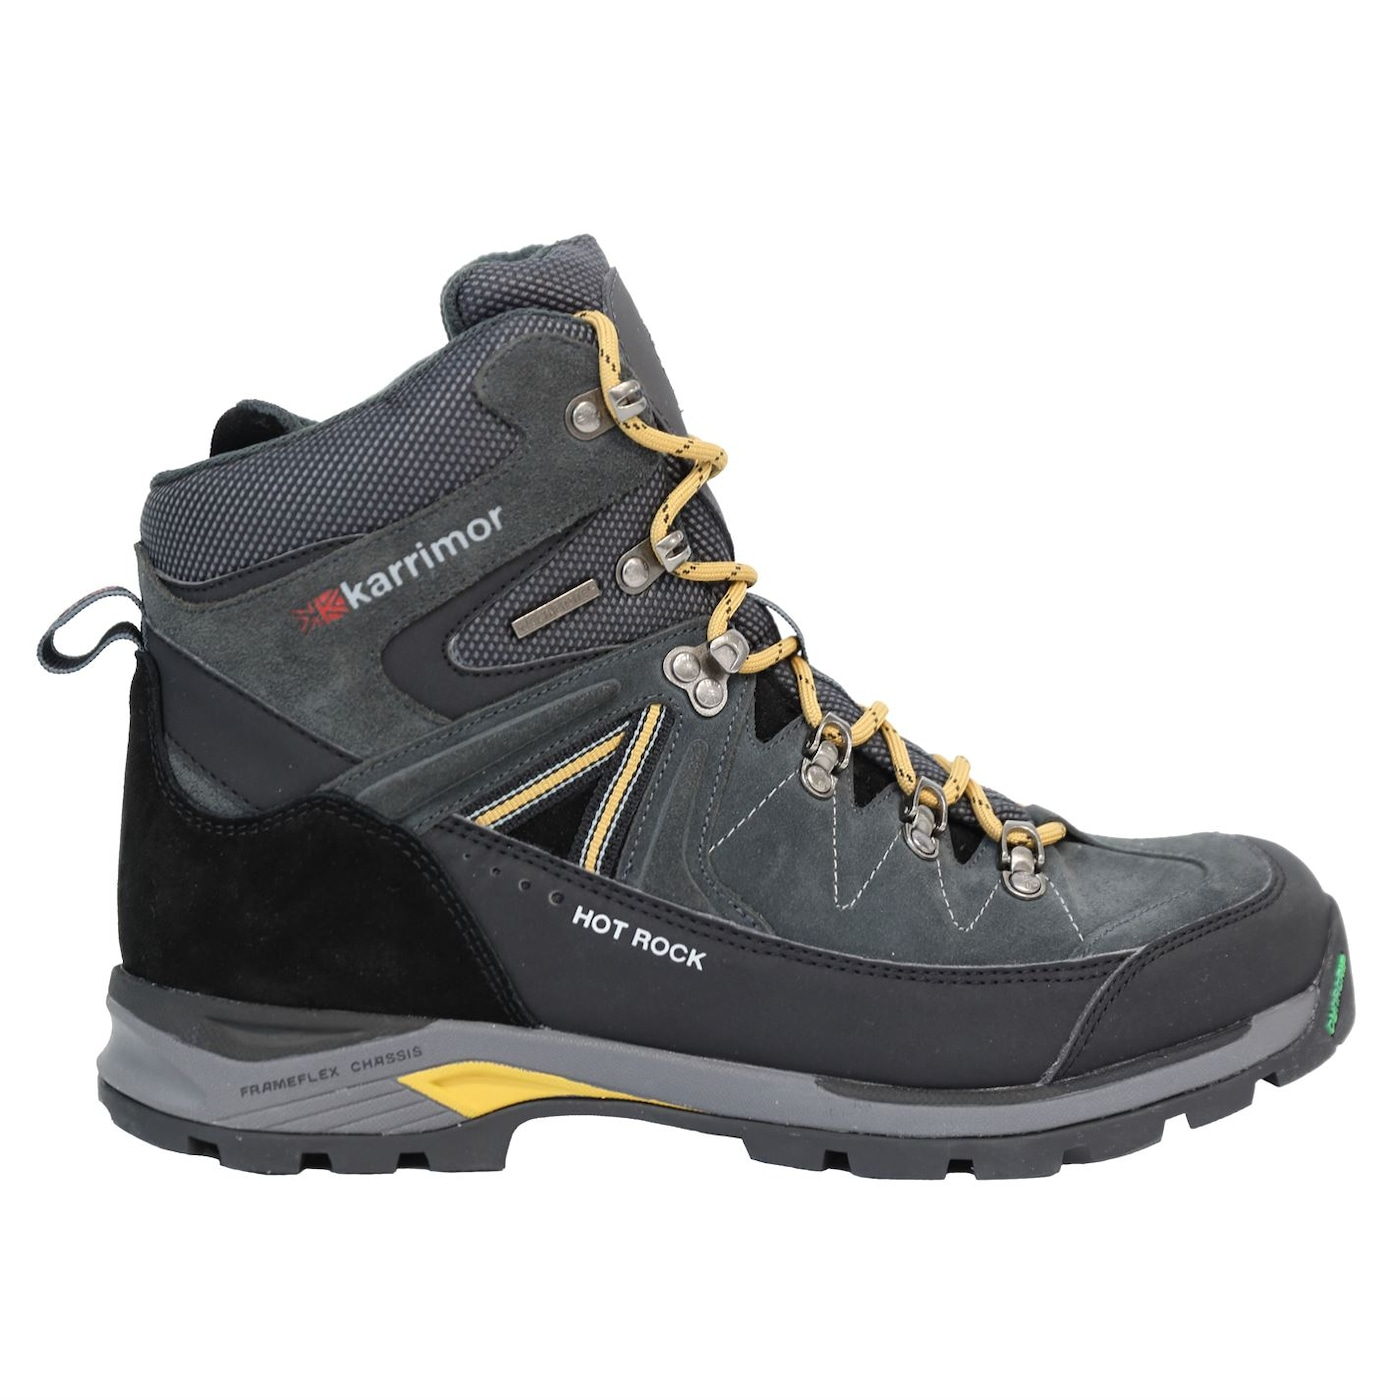 Karrimor Mens Merlin Walking Boots Lace Up Padded Ankle Collar